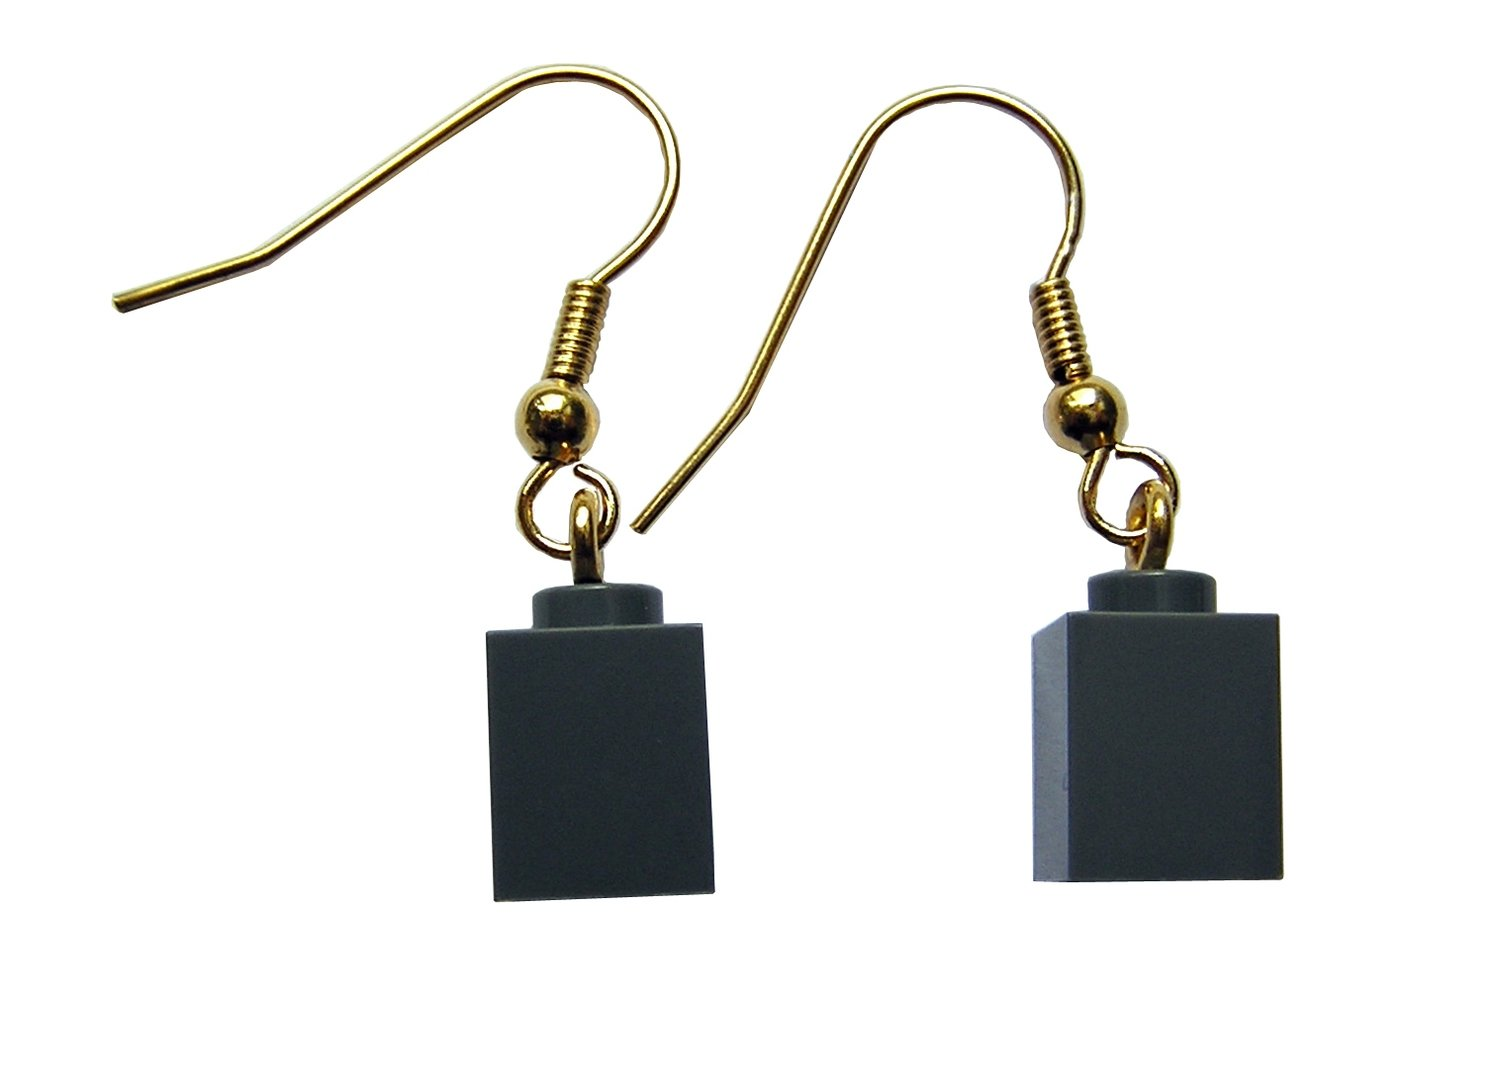 Gray LEGO® brick 1x1 on a Gold plated dangle (hook)